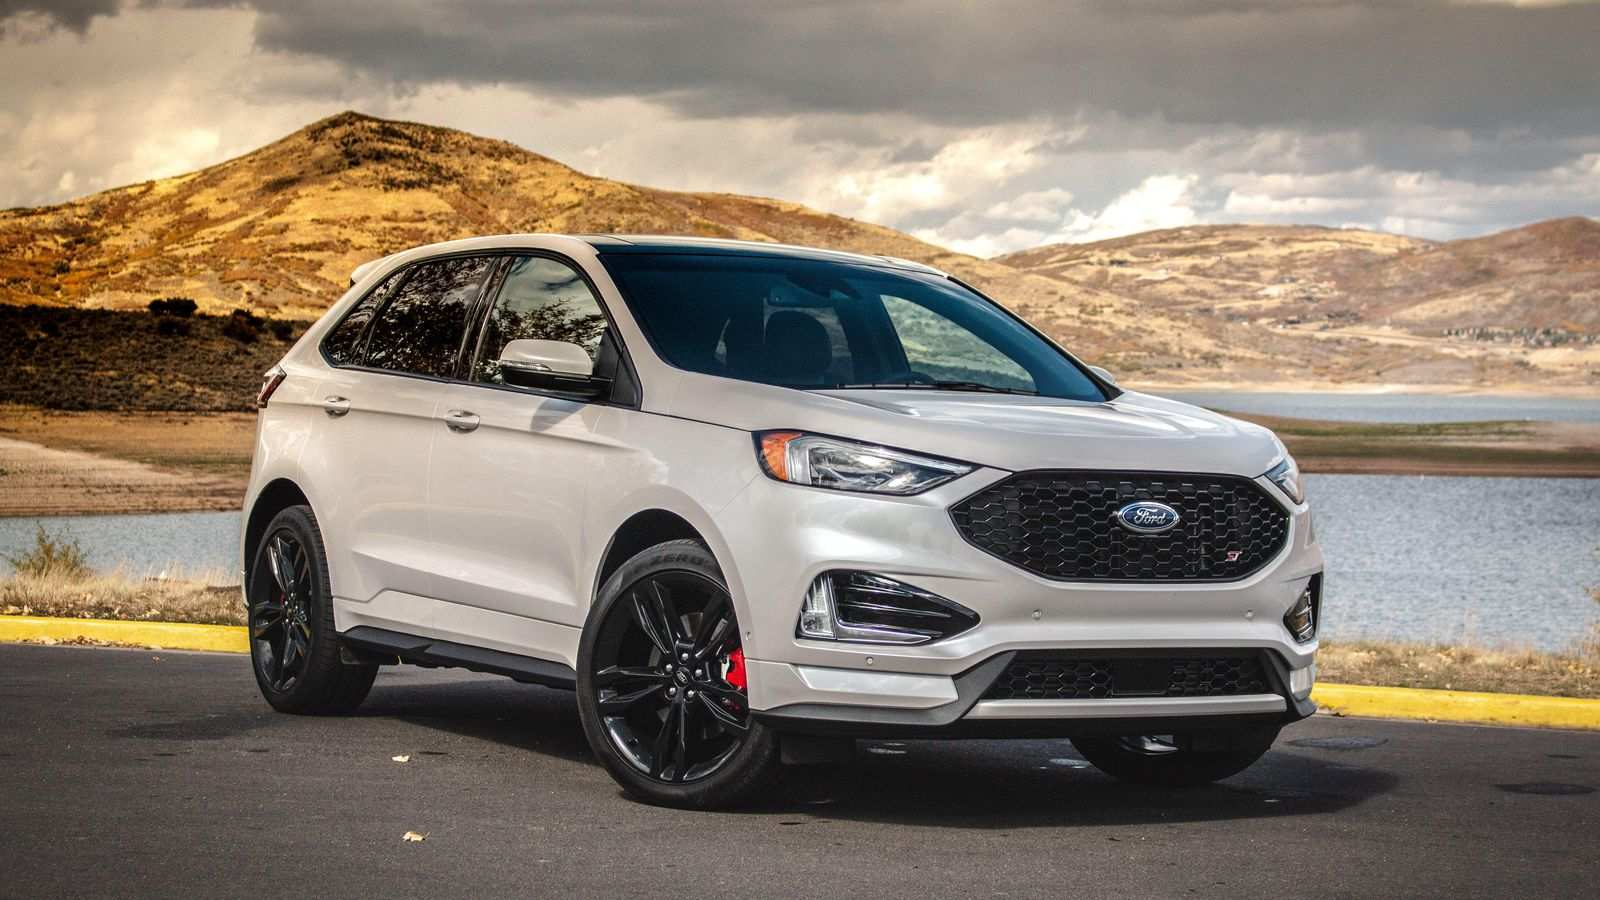 33 All New 2019 Ford Edge Sport Style for 2019 Ford Edge Sport